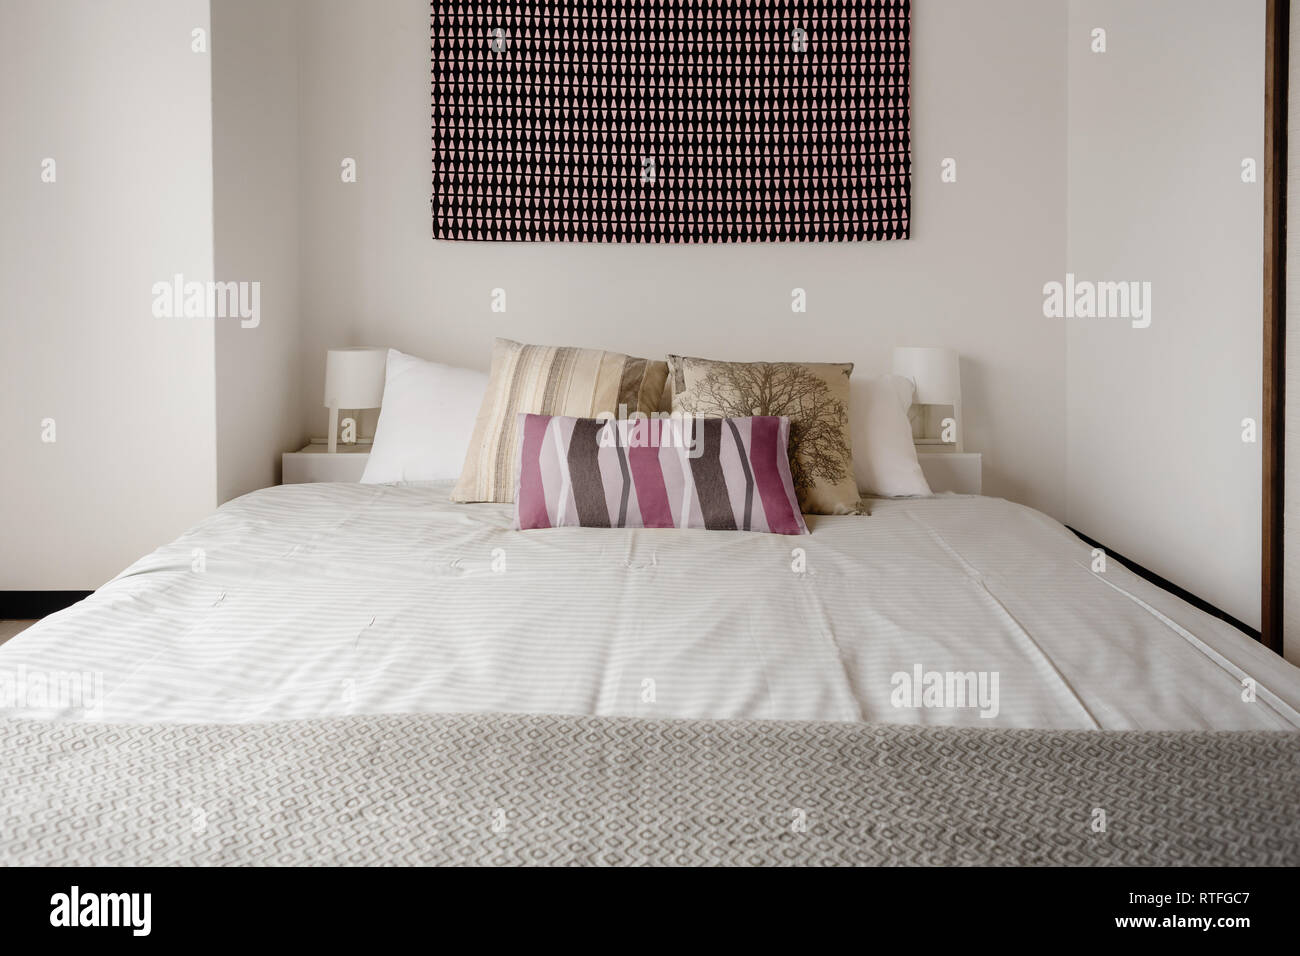 Wall Covering Bedroom High Resolution Stock Photography And Images Alamy